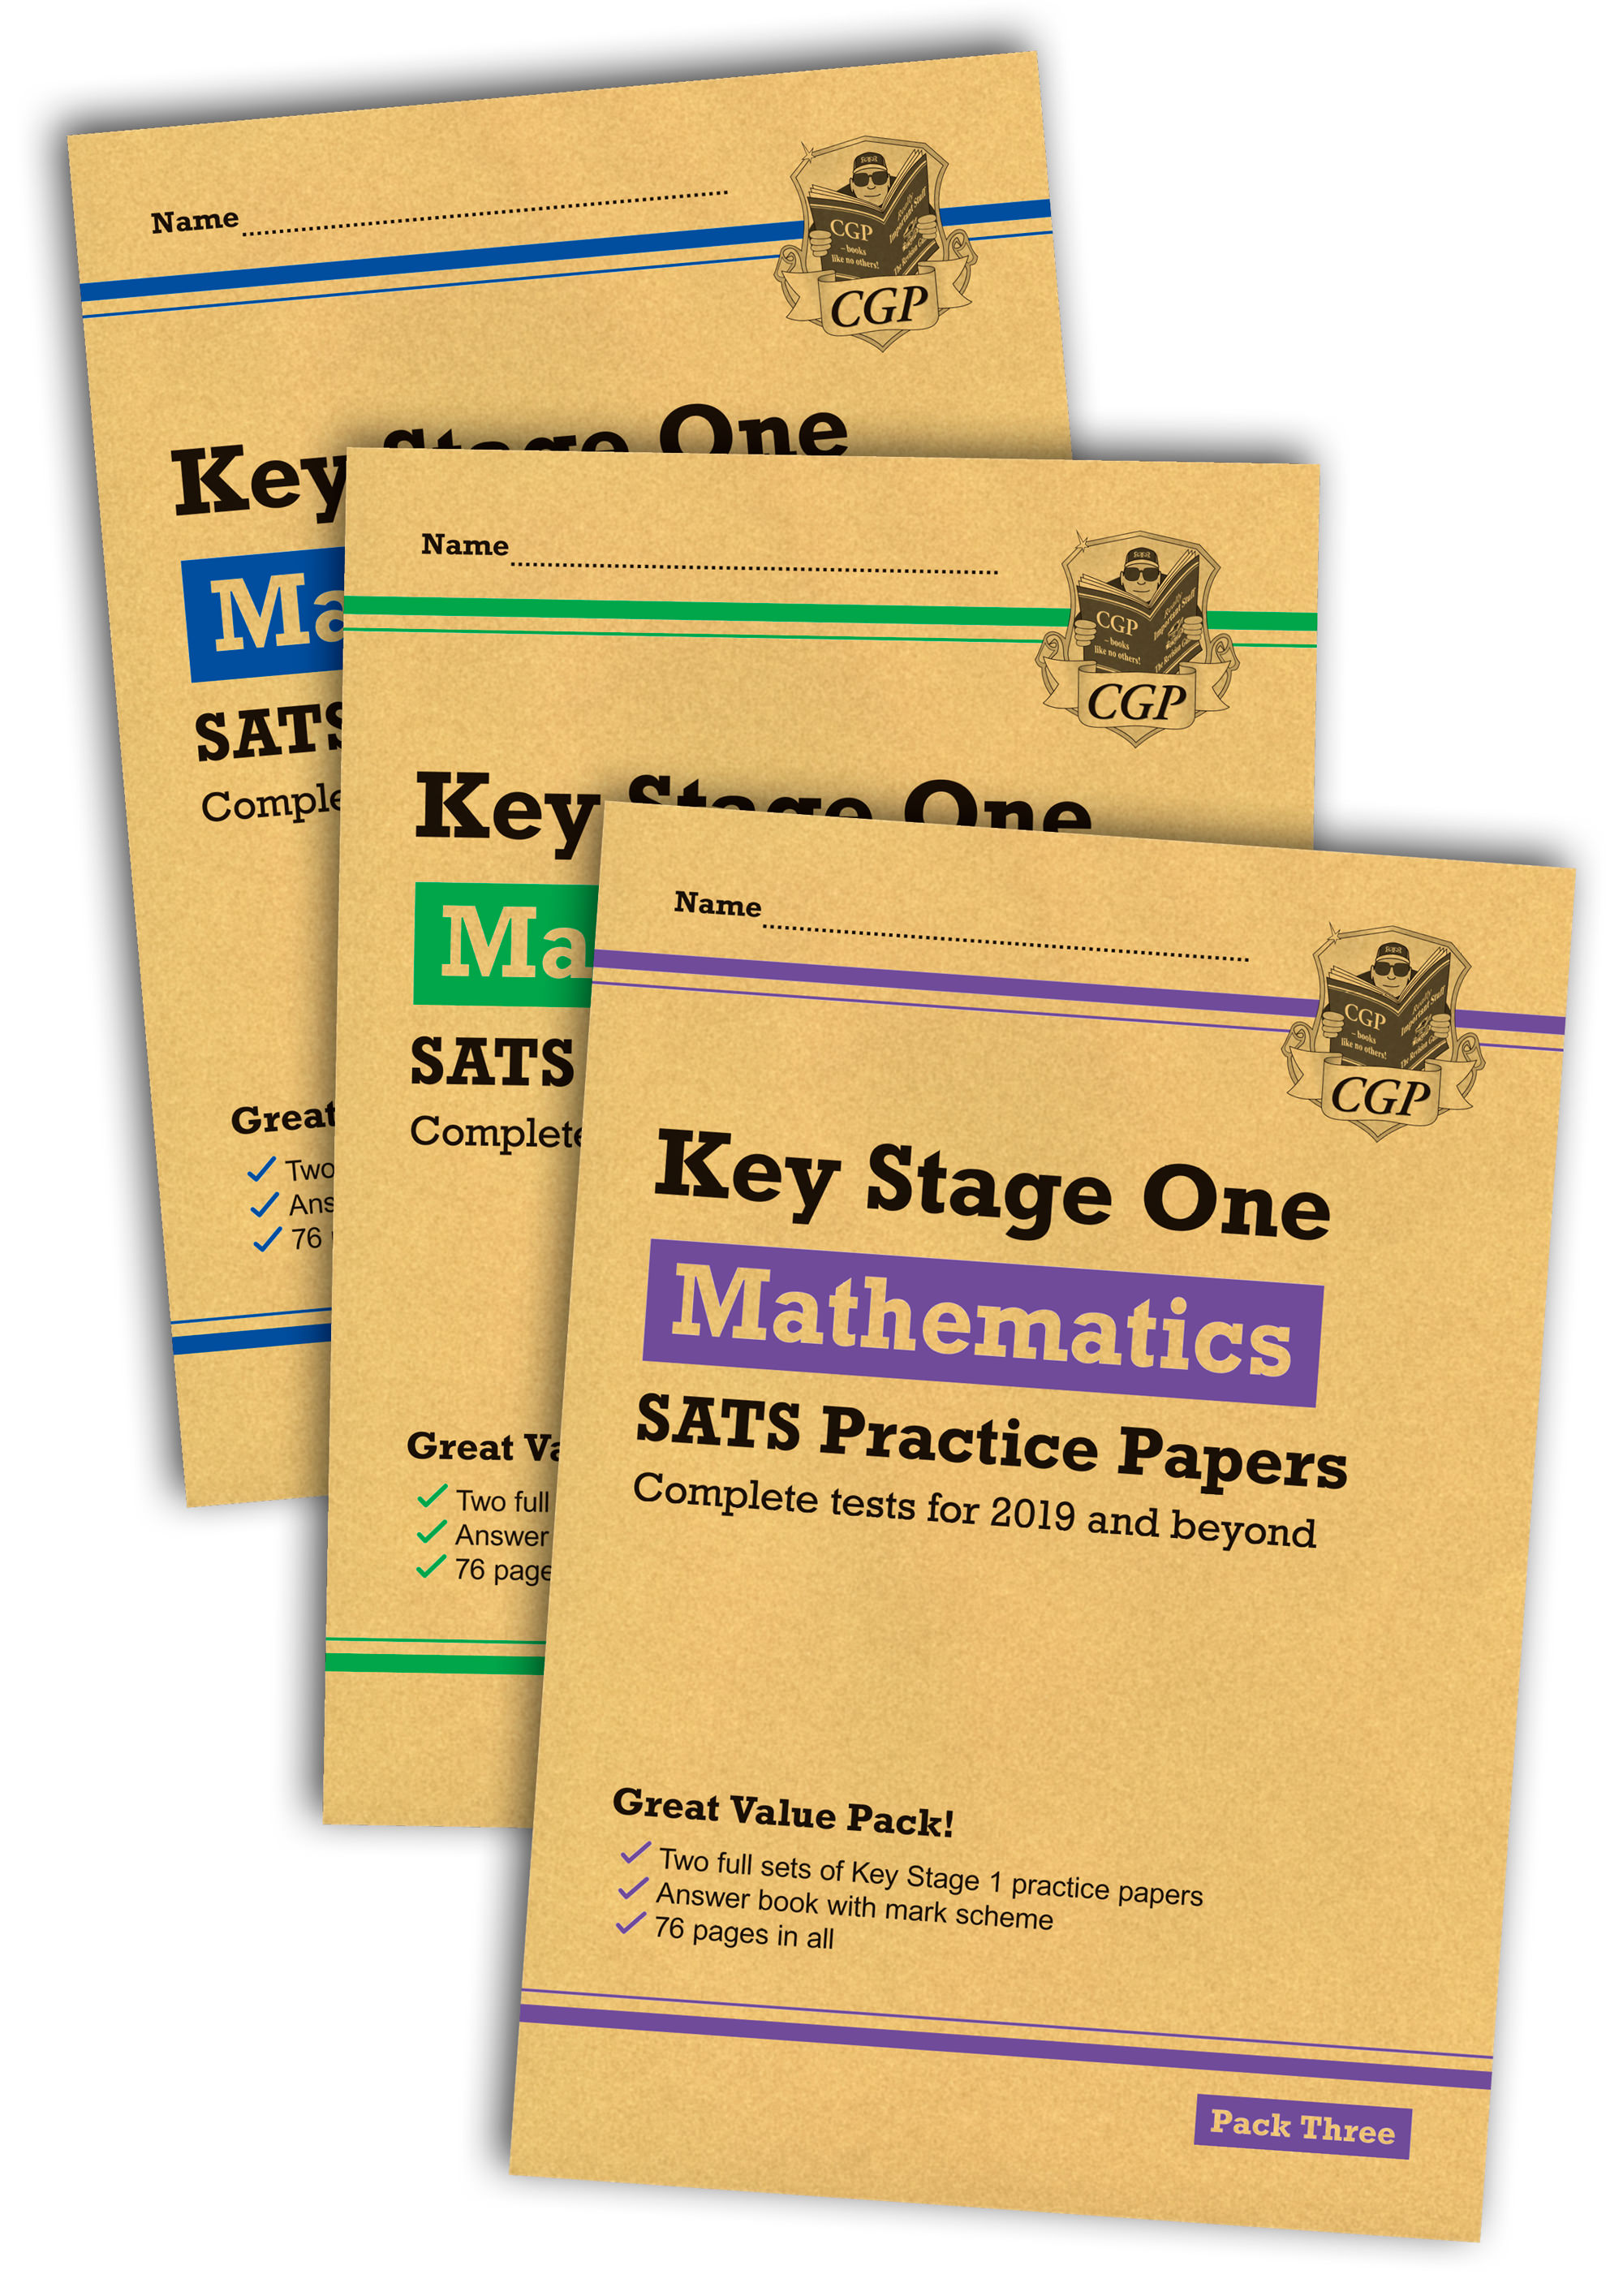 MHB3P13 - New KS1 Maths SATS Practice Paper Bundle: Packs 1, 2 & 3 (for the 2019 tests)